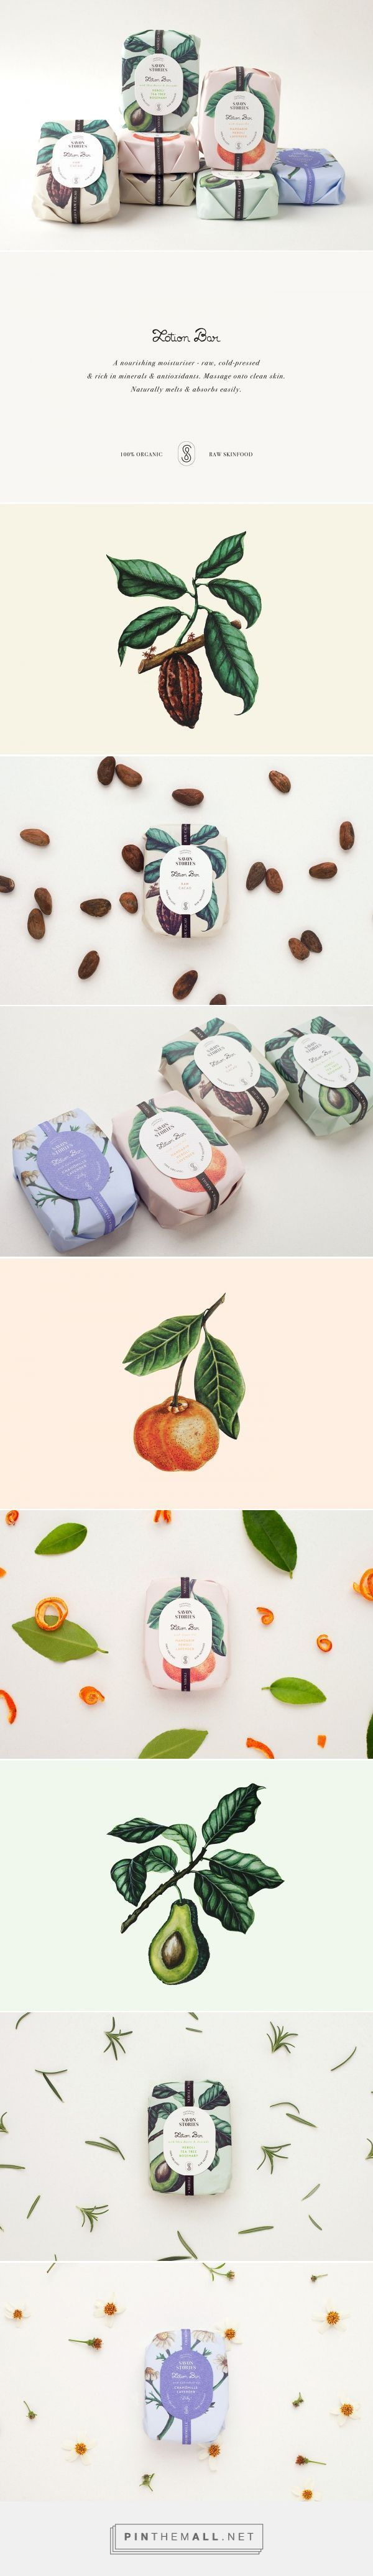 Art direction, illustration and packaging for Savon Stories Lotion Bars on Behance by Menta Guadalajara, Mexico curated by Packaging Diva PD. New luxury line made with raw ingredients and essential oils to nourish the skin deeply. #packaging #package #packagingdesign #graphicdesign #creative #creativemarket